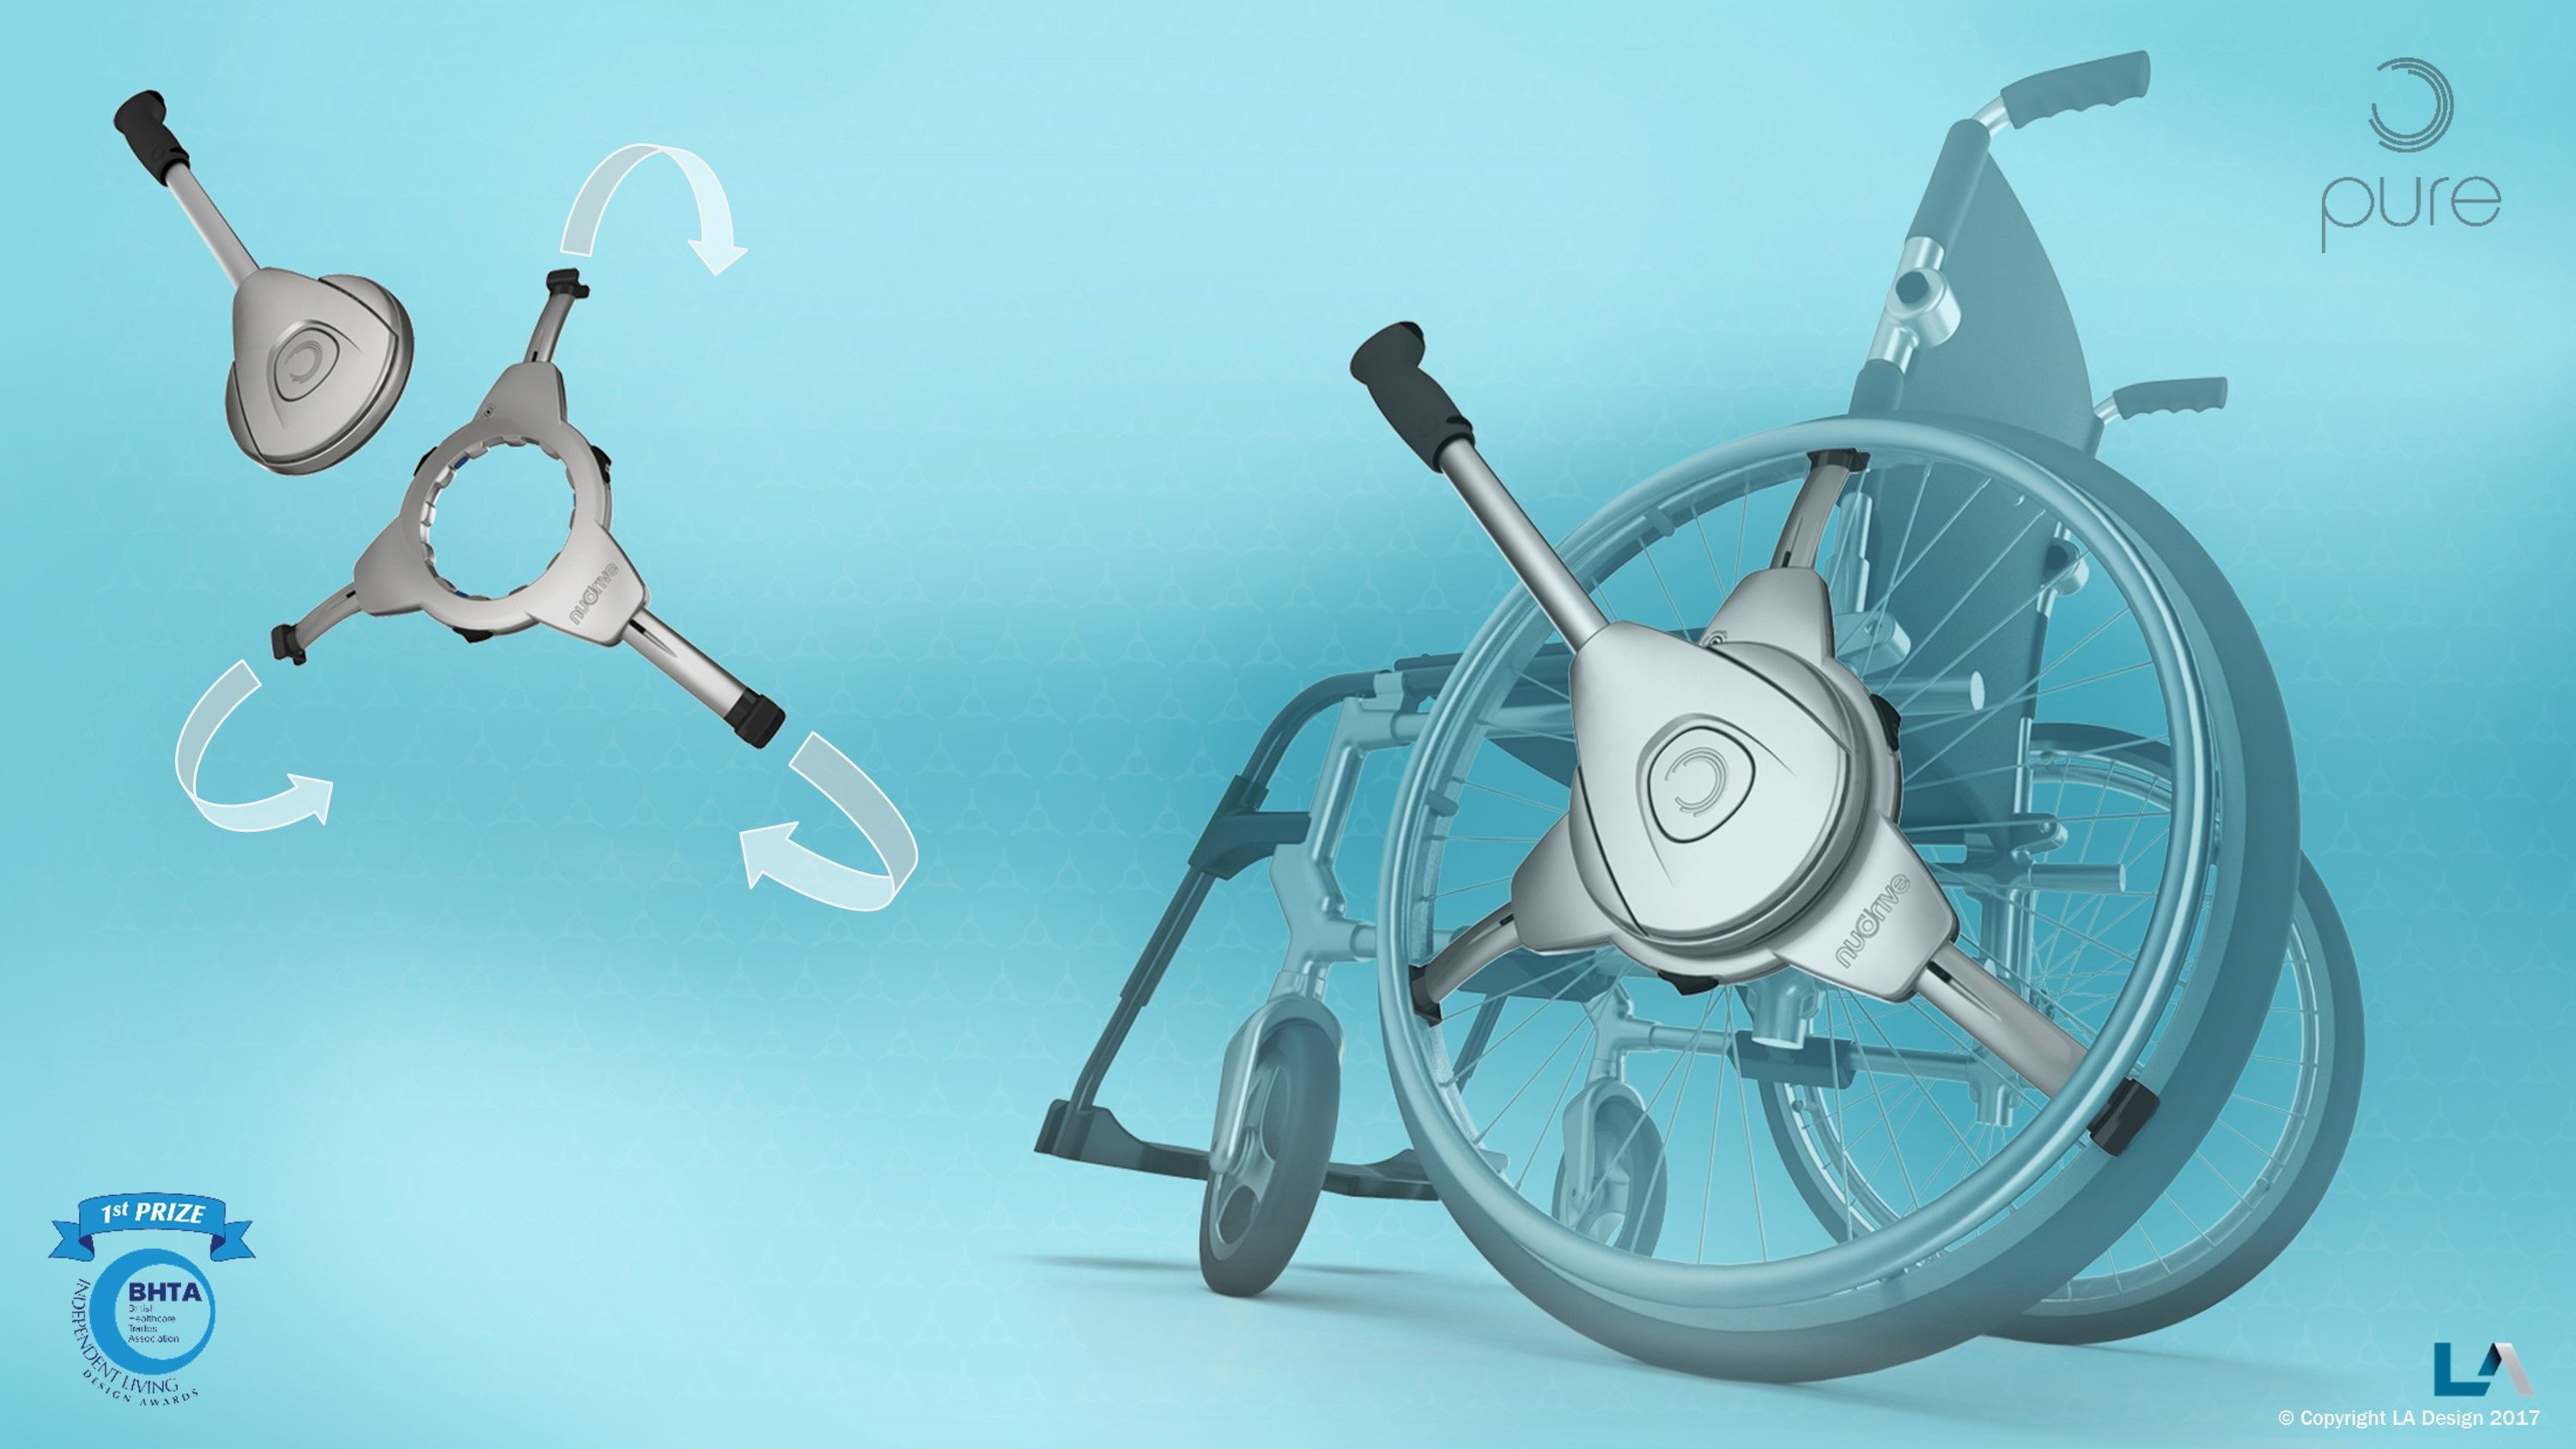 0fb4adaecfb NuDrive Wheelchair Lever Drive System Working with an entrepreneurial  start-up company to research